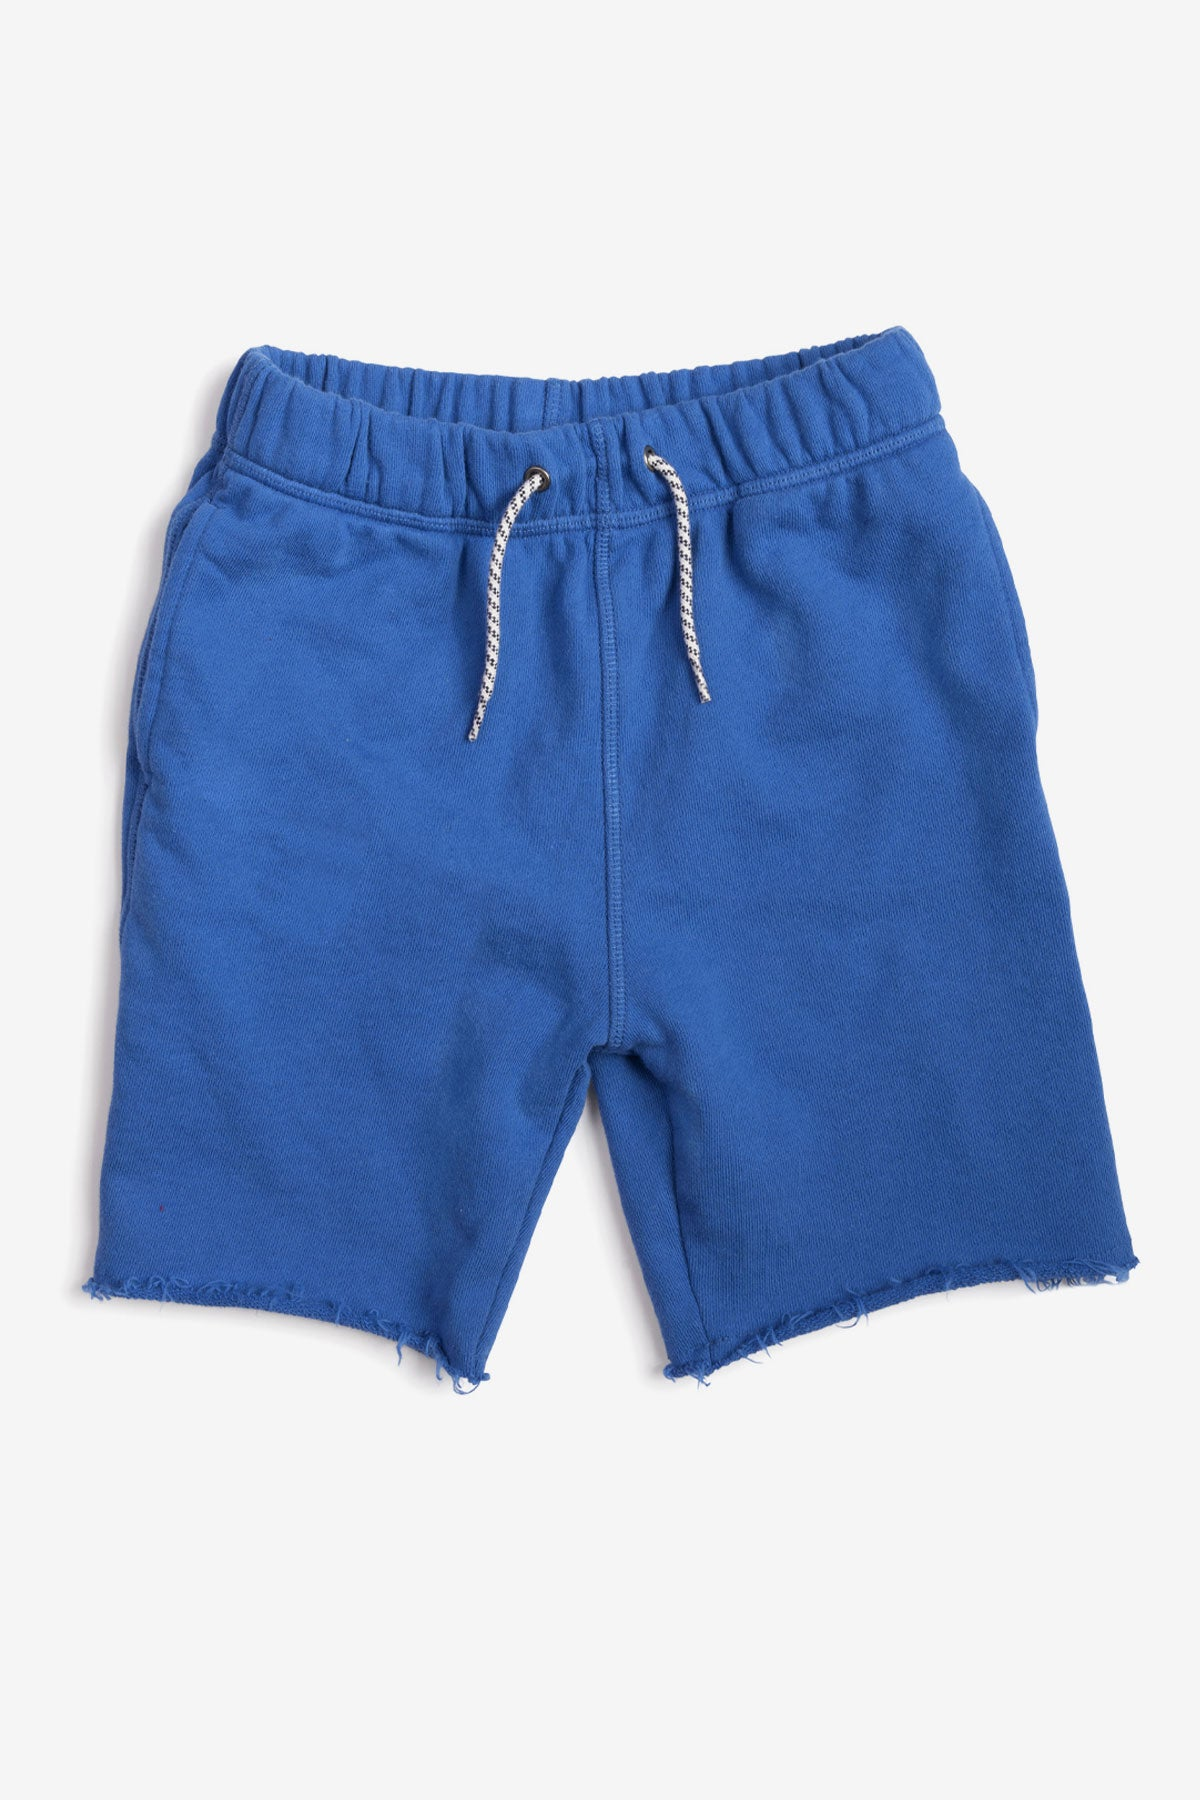 Appaman Camp Boys Shorts - City Blue